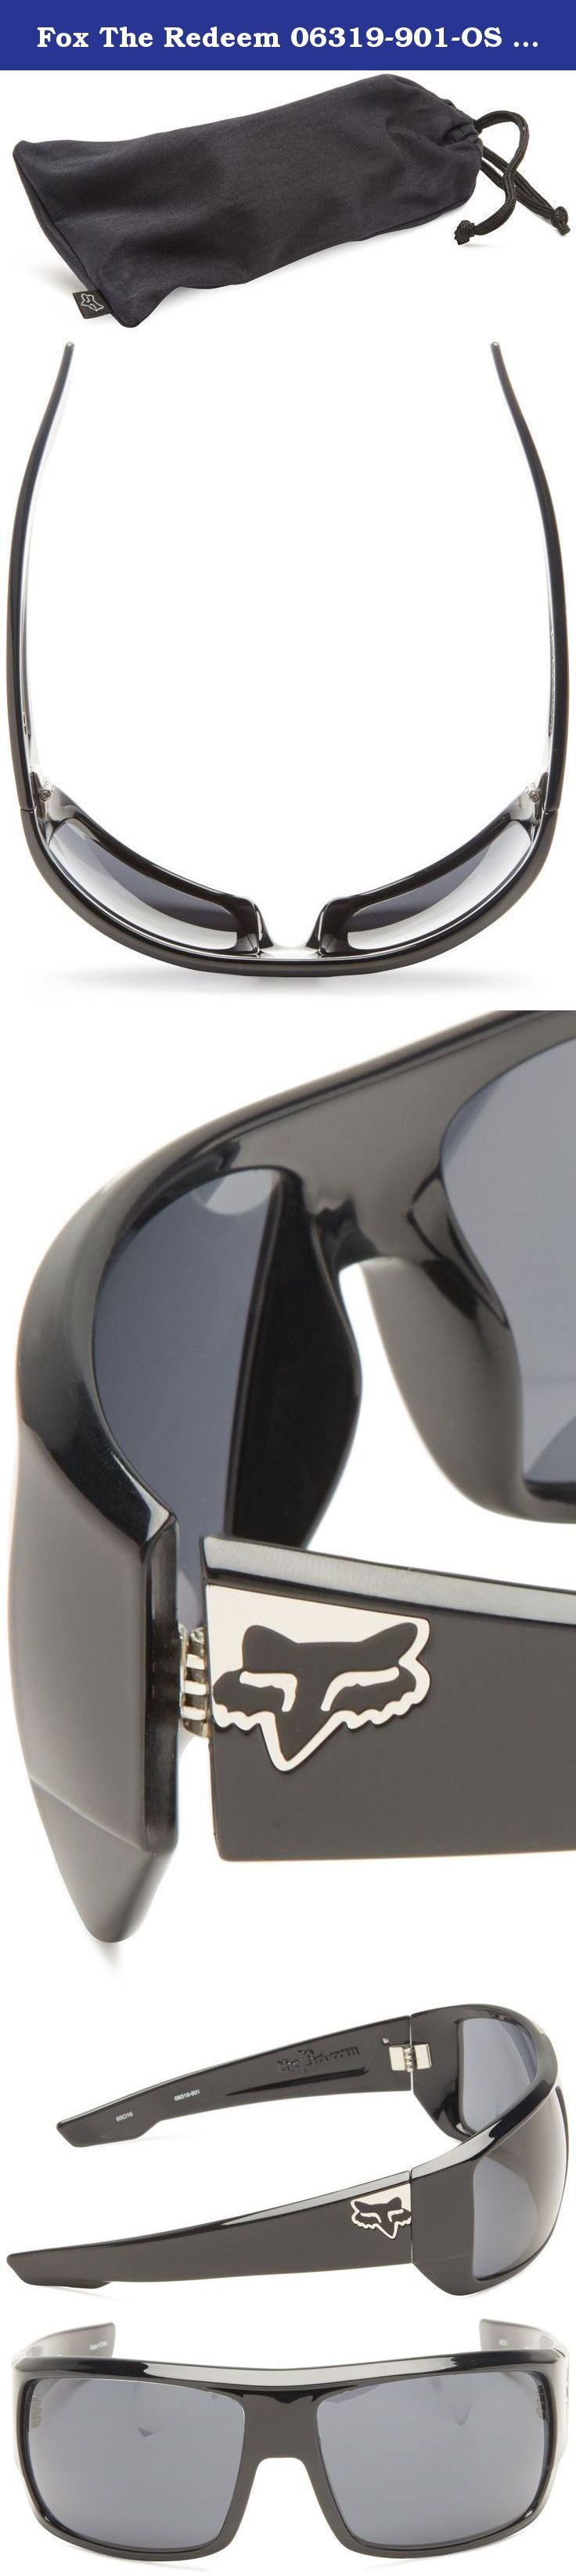 Fox The Redeem 06319-901-OS Wrap Sunglasses,Polished Black & Grey,65 mm. Primary Color: Black Distinct Name: Polished Black / Gray Lens Frame: Nylon Hinge: 7 Barrel Metal - Optical Grade Lens Shape: Large Rounded Wrap Temple: Nylon with Metal Plate Logo: Metal Fox Head Lens: 8 Base Polycarbonate All Fox Eyewear lenses have been tested and manufactured by Carl Zeiss Vision Sunlens and offer outstanding optical quality, performance, UV protection, scratch resistance and impact protection .